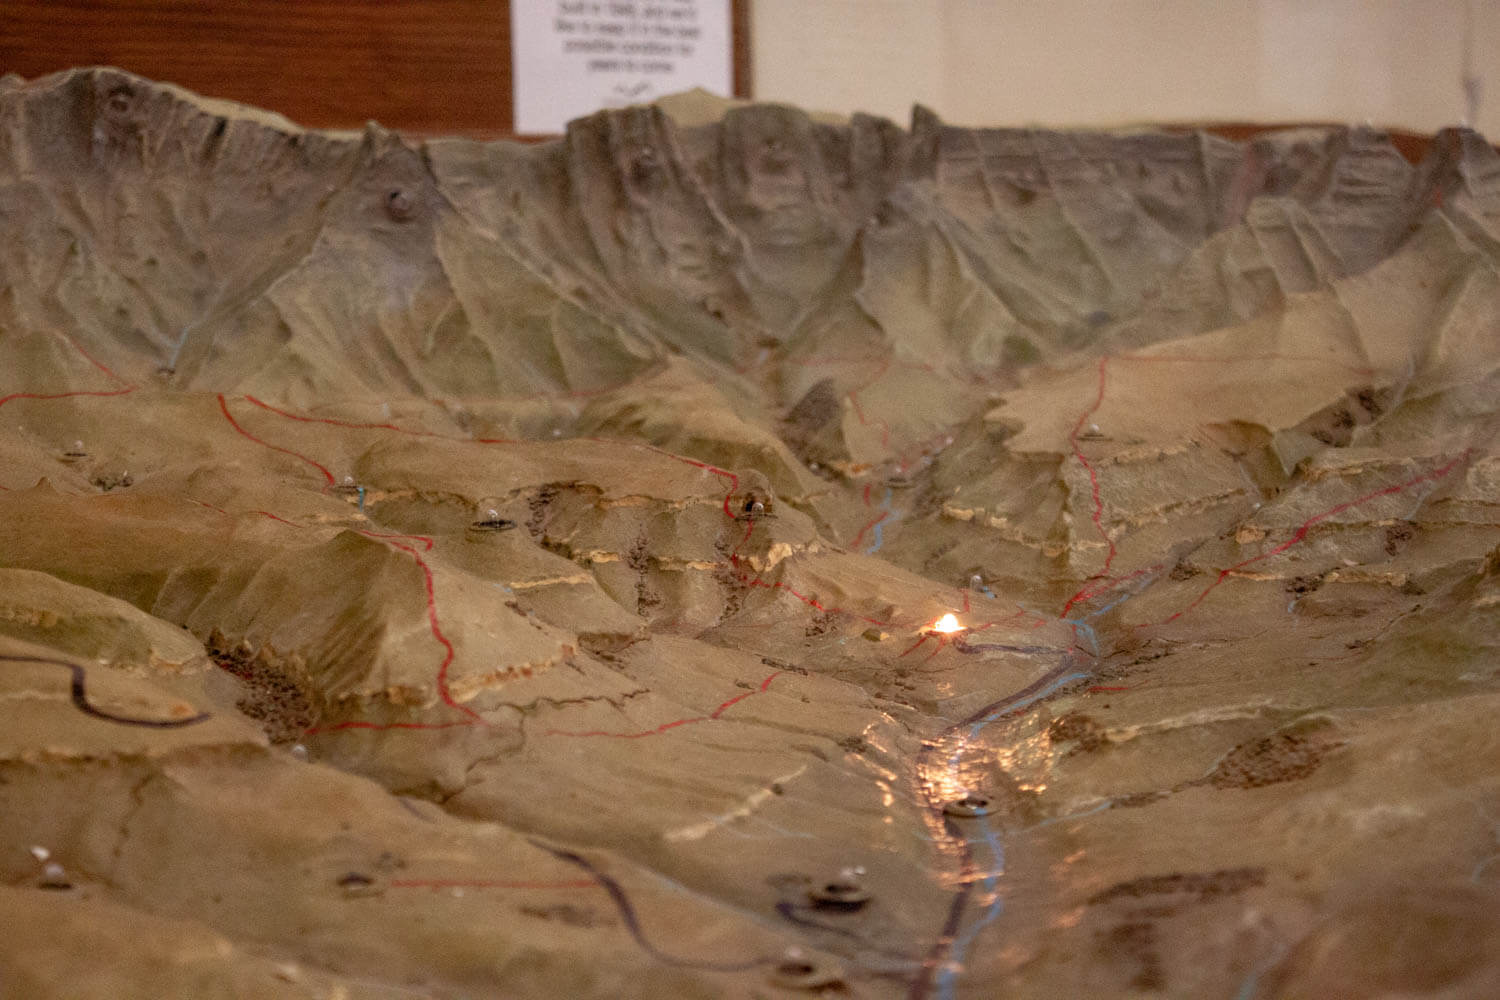 The hotel's model of all the hikes in Cathedral Peak Hotel